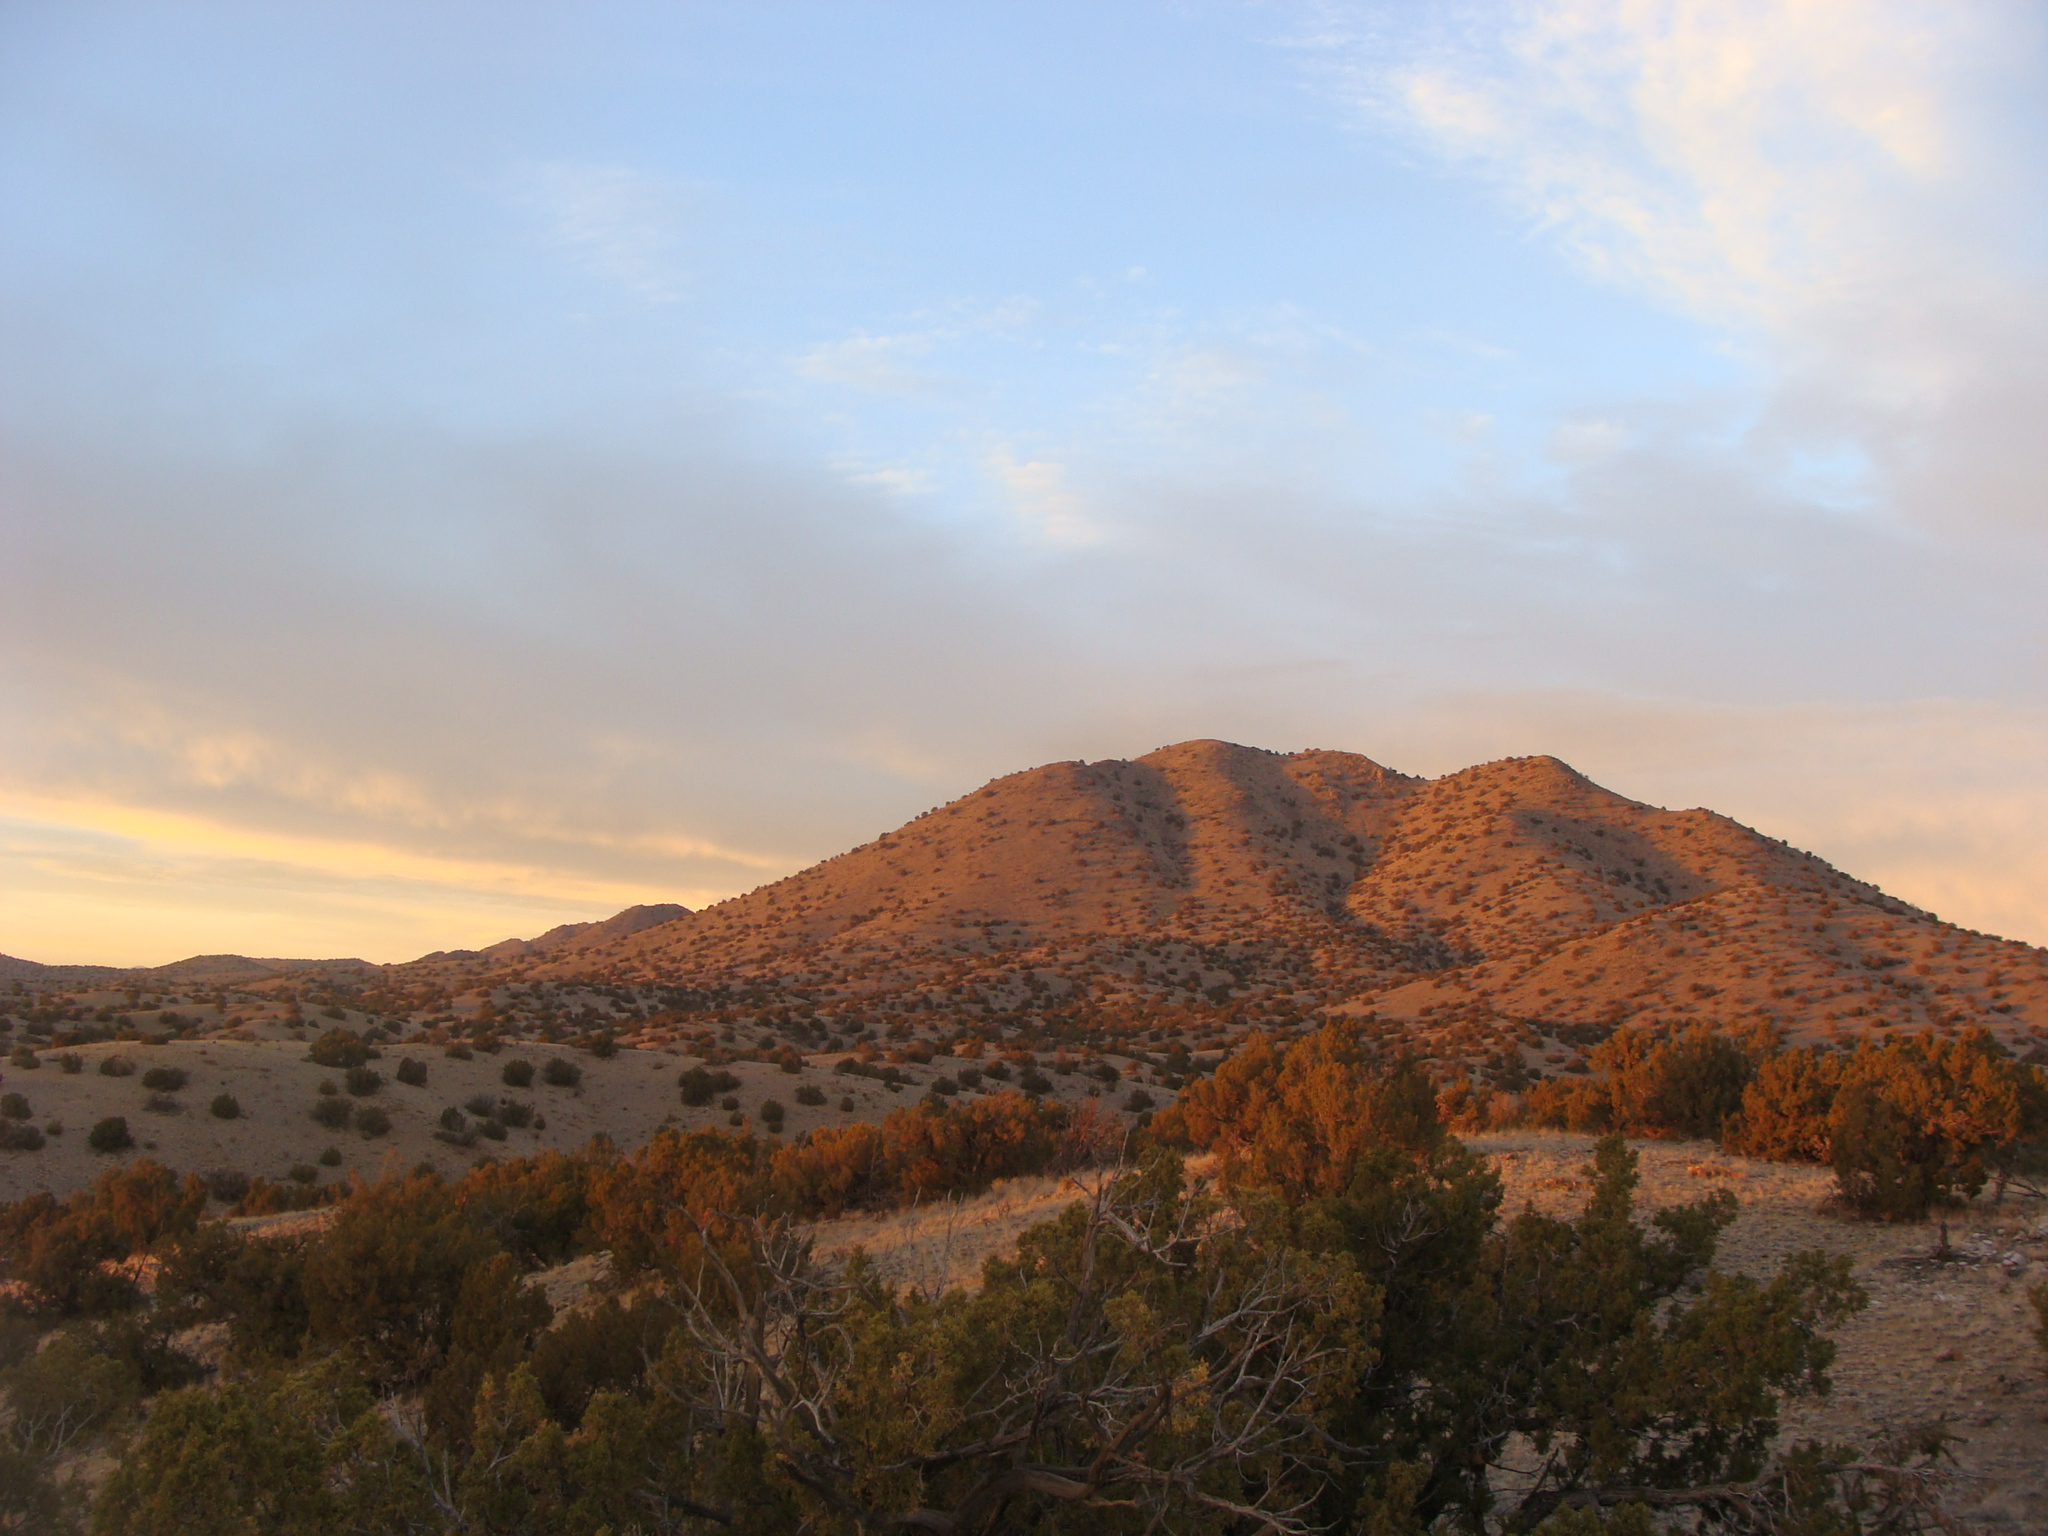 Hillsides bathed in evening light in cerrillos state park